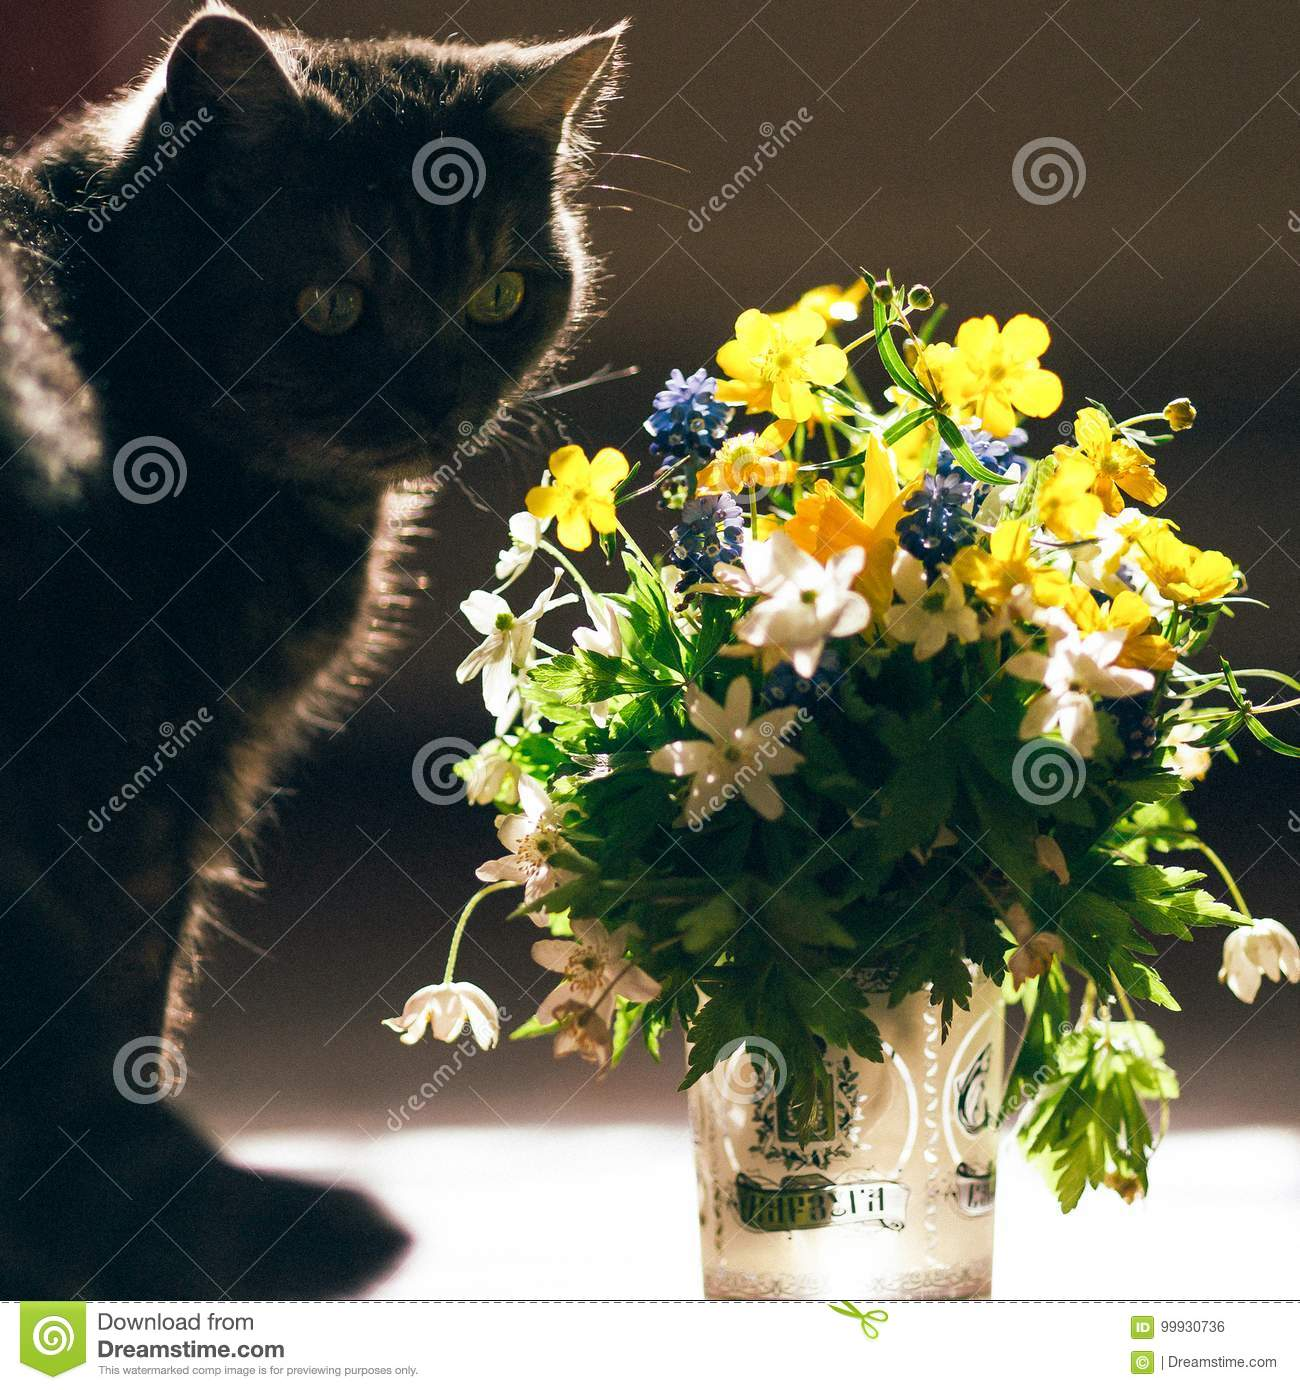 The Cat And The Bouquet Of Flowers Stock Photo Image Of White